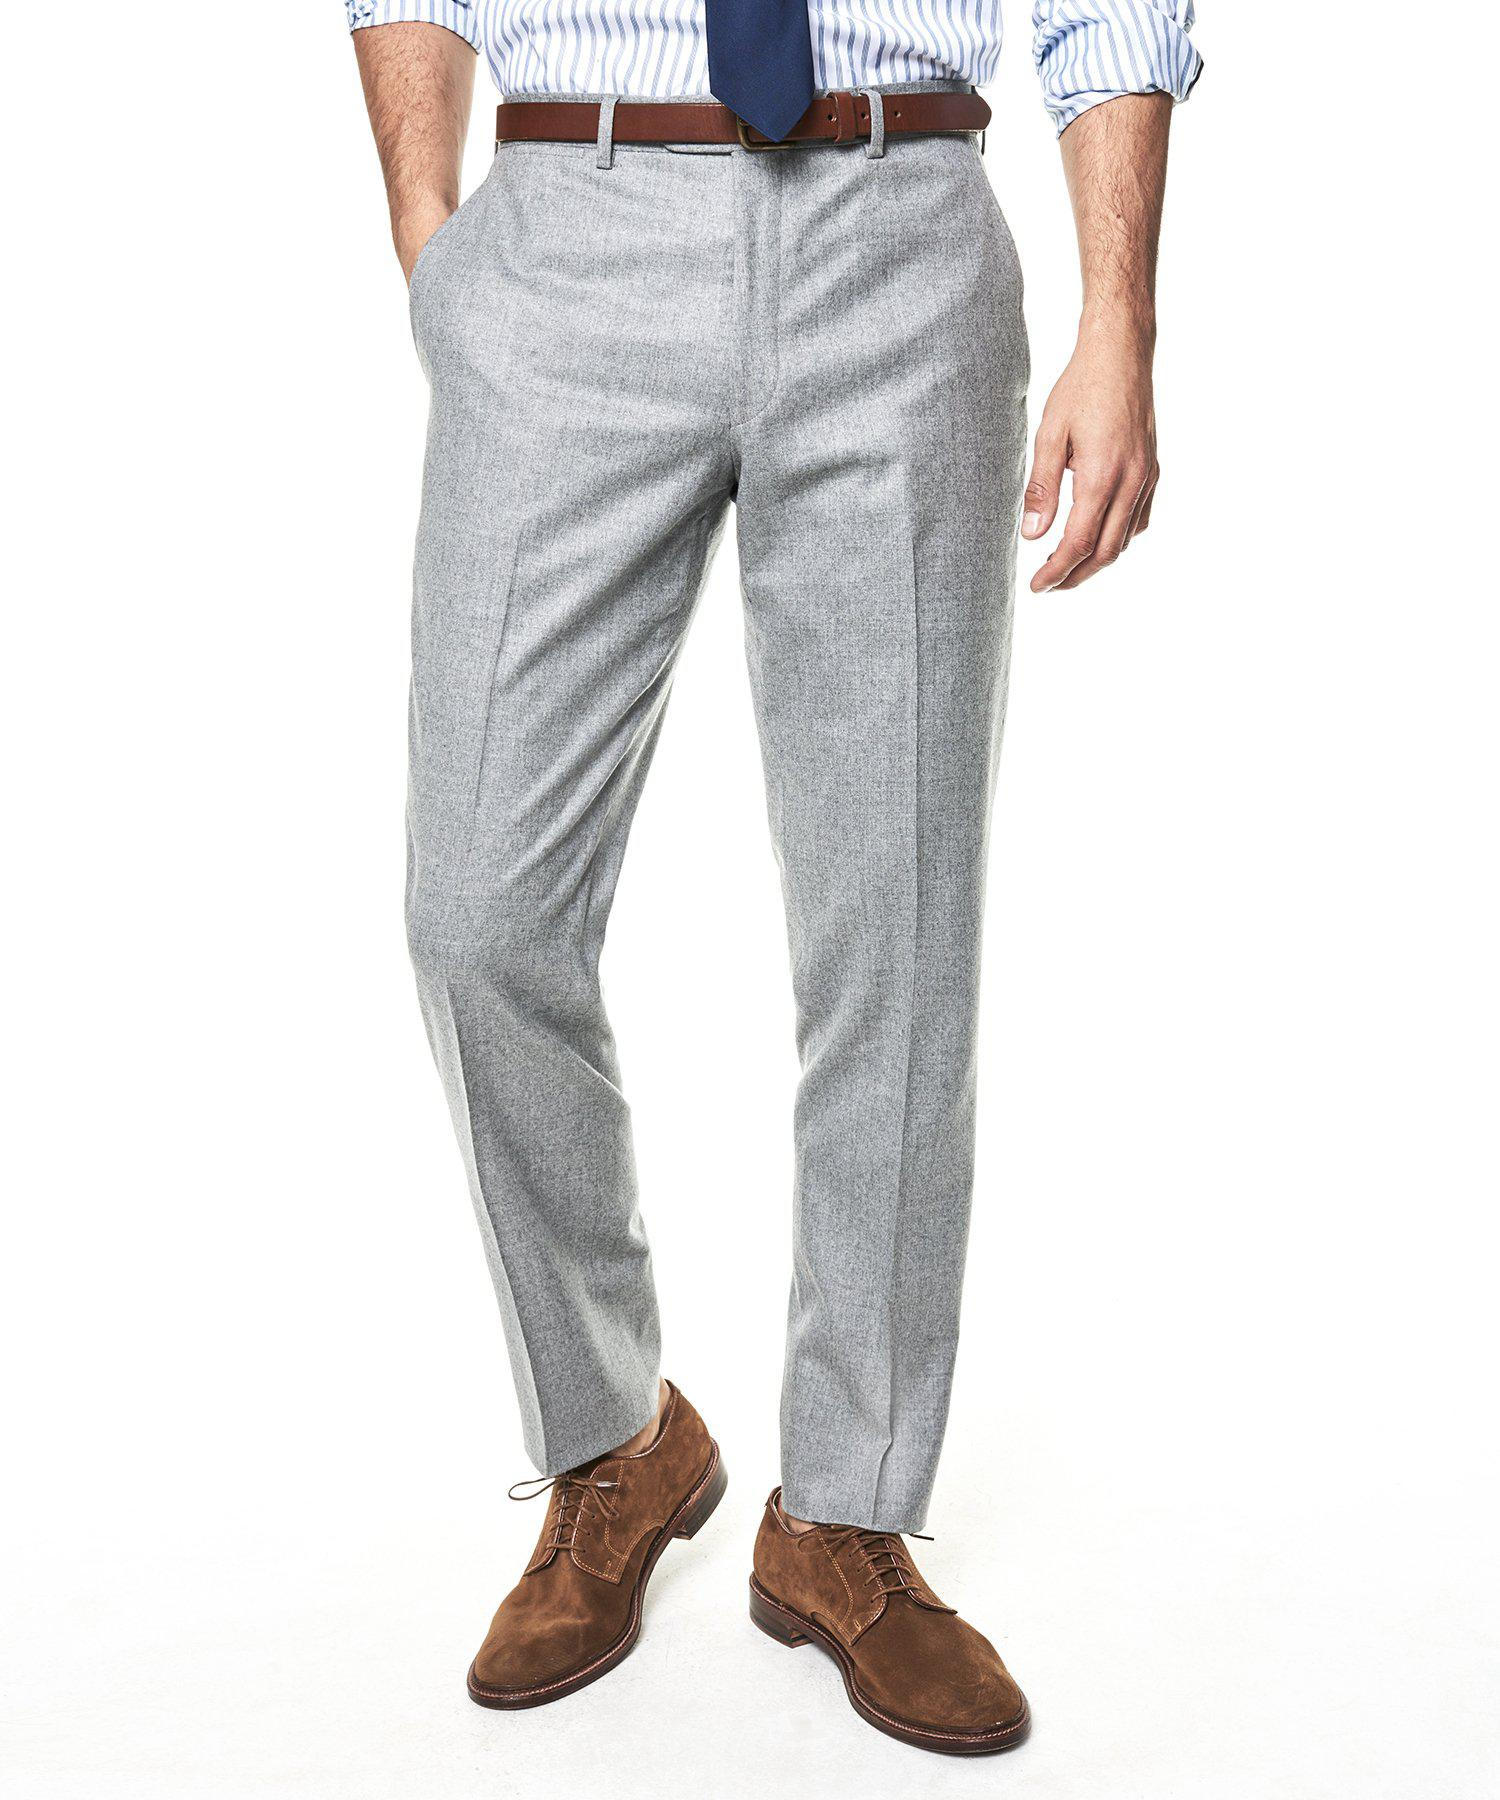 c256be9013cace ... Gray Sutton Suit Pant In Italian Light Grey Heather Wool Flannel for Men.  View fullscreen